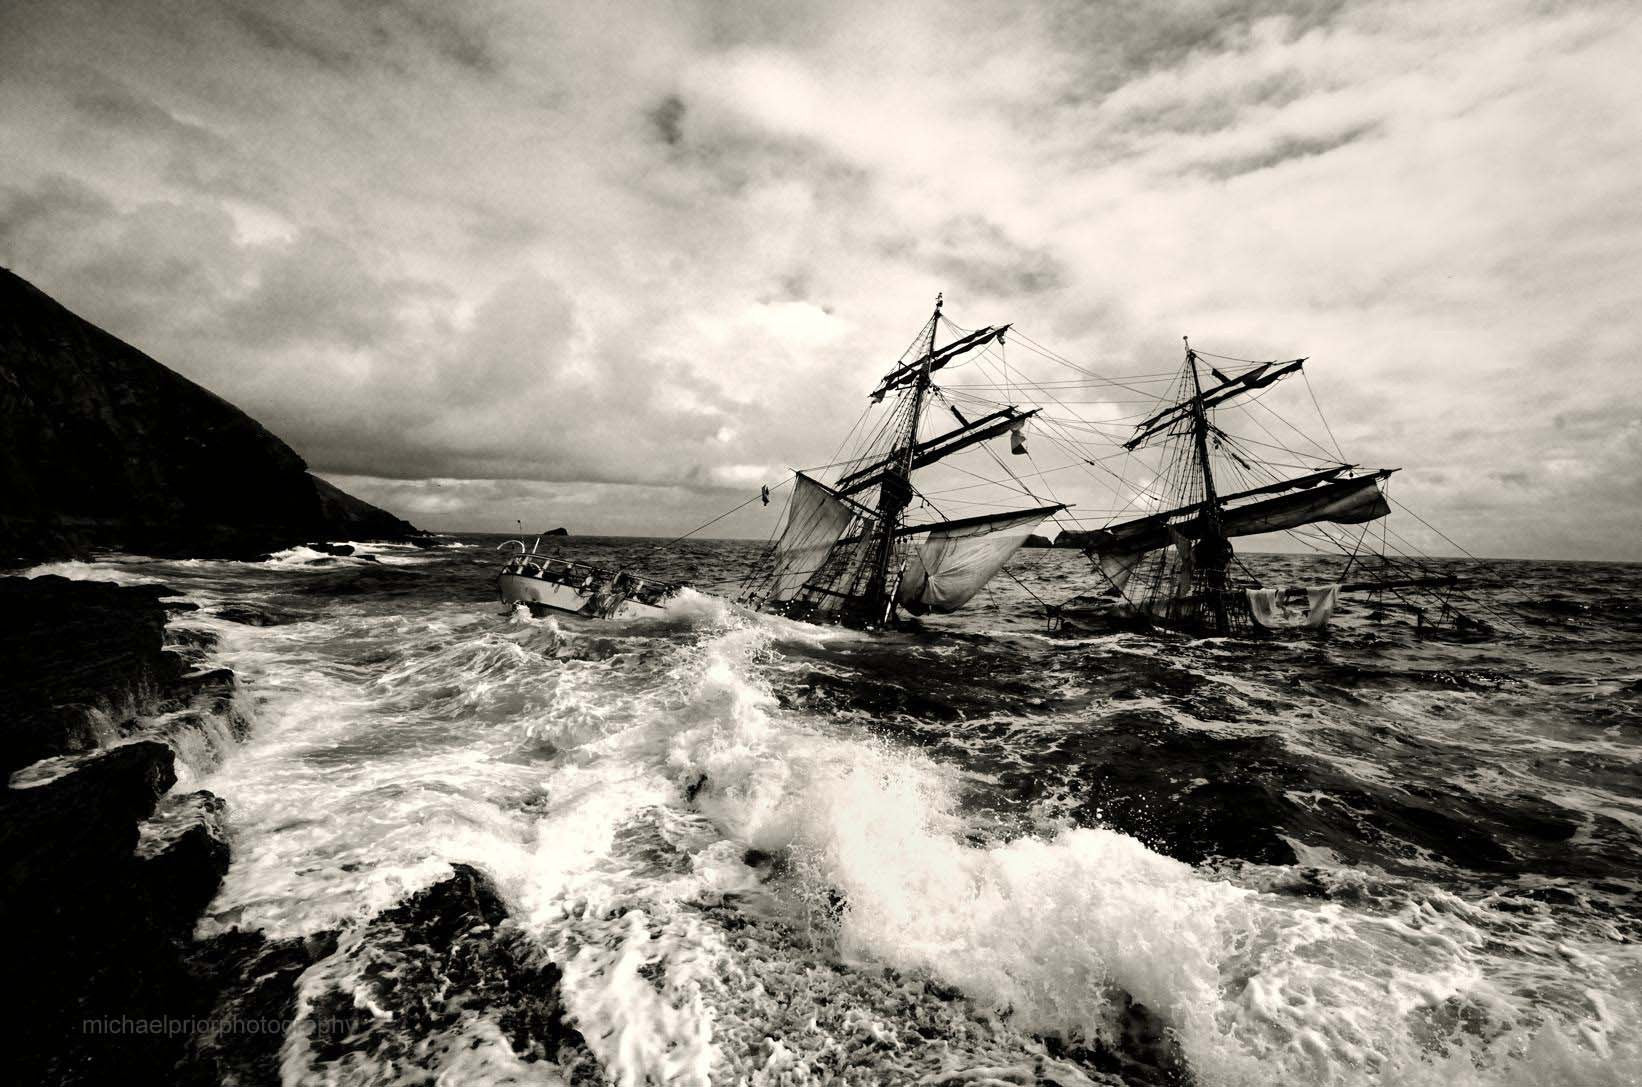 The Sunken Astrid - Black & White - Michael Prior Photography